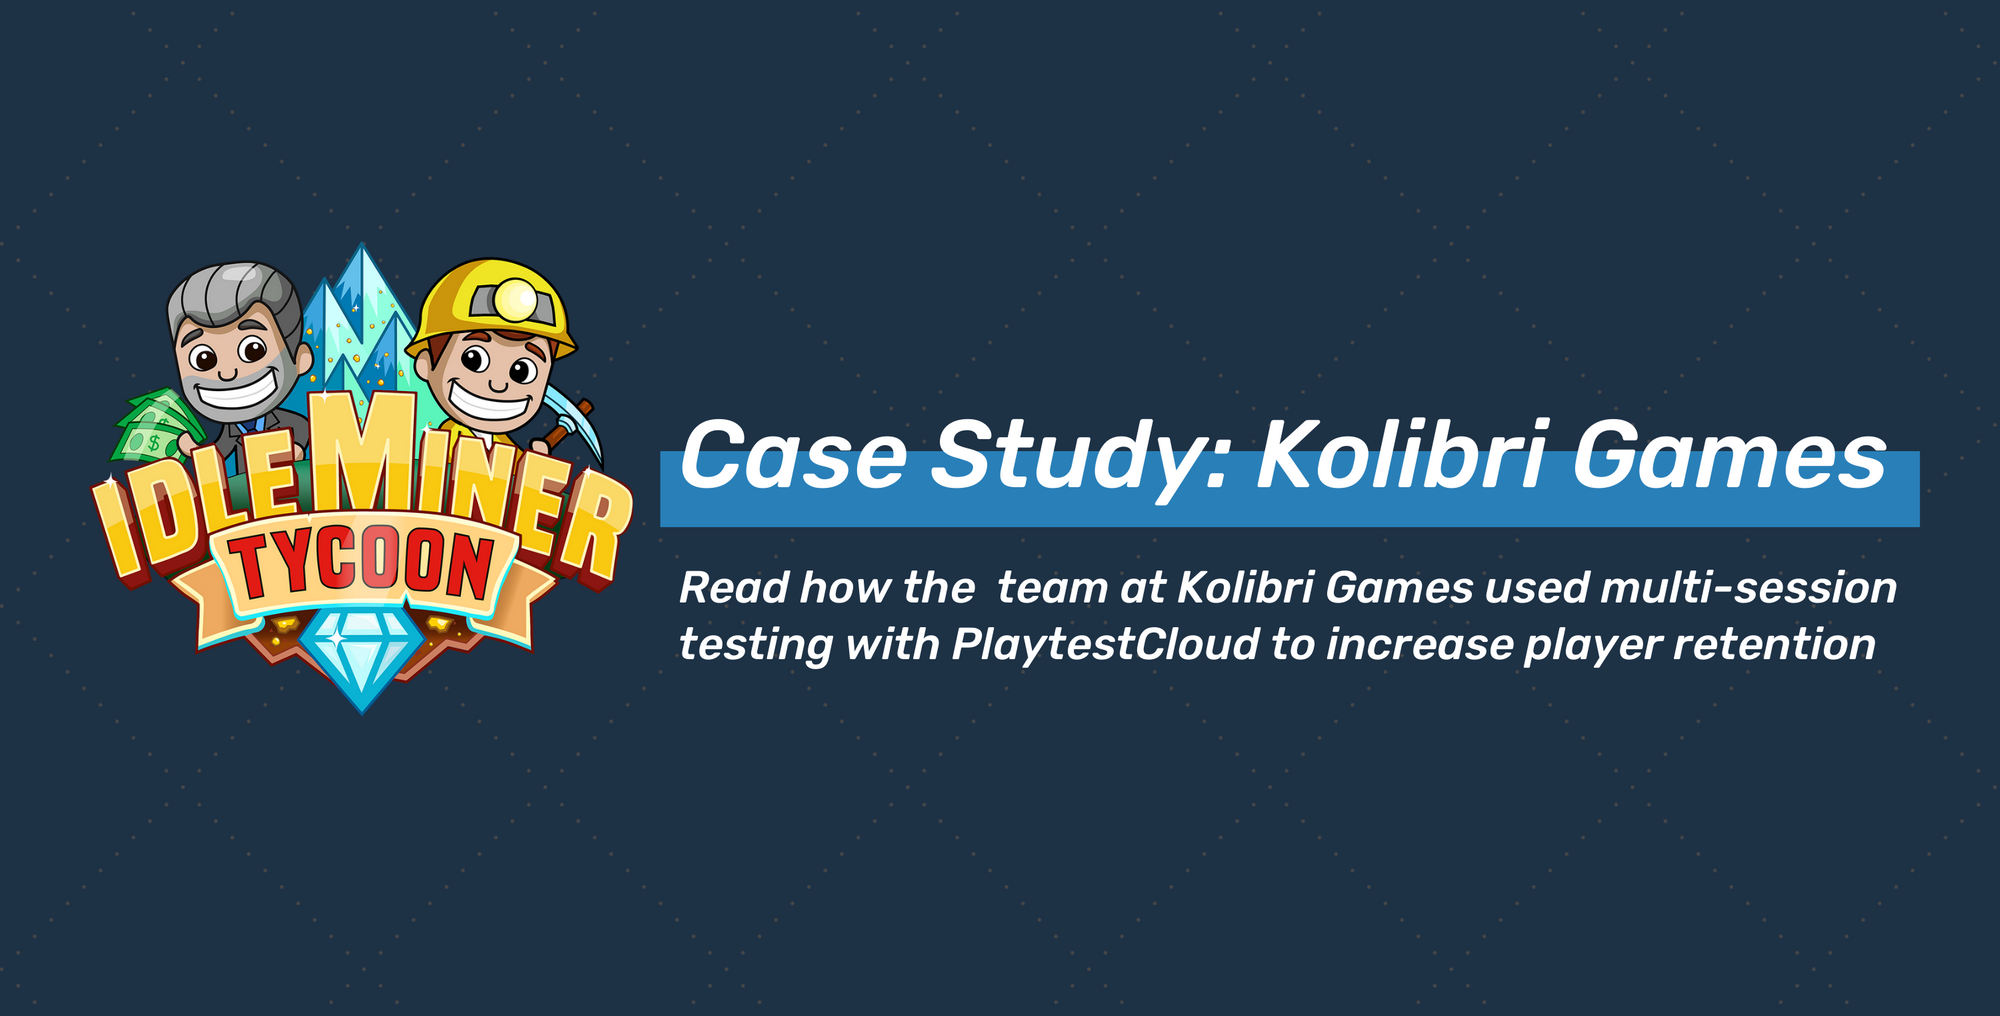 Multi-session Testing allows Kolibri Games to test methods to increase player retention.